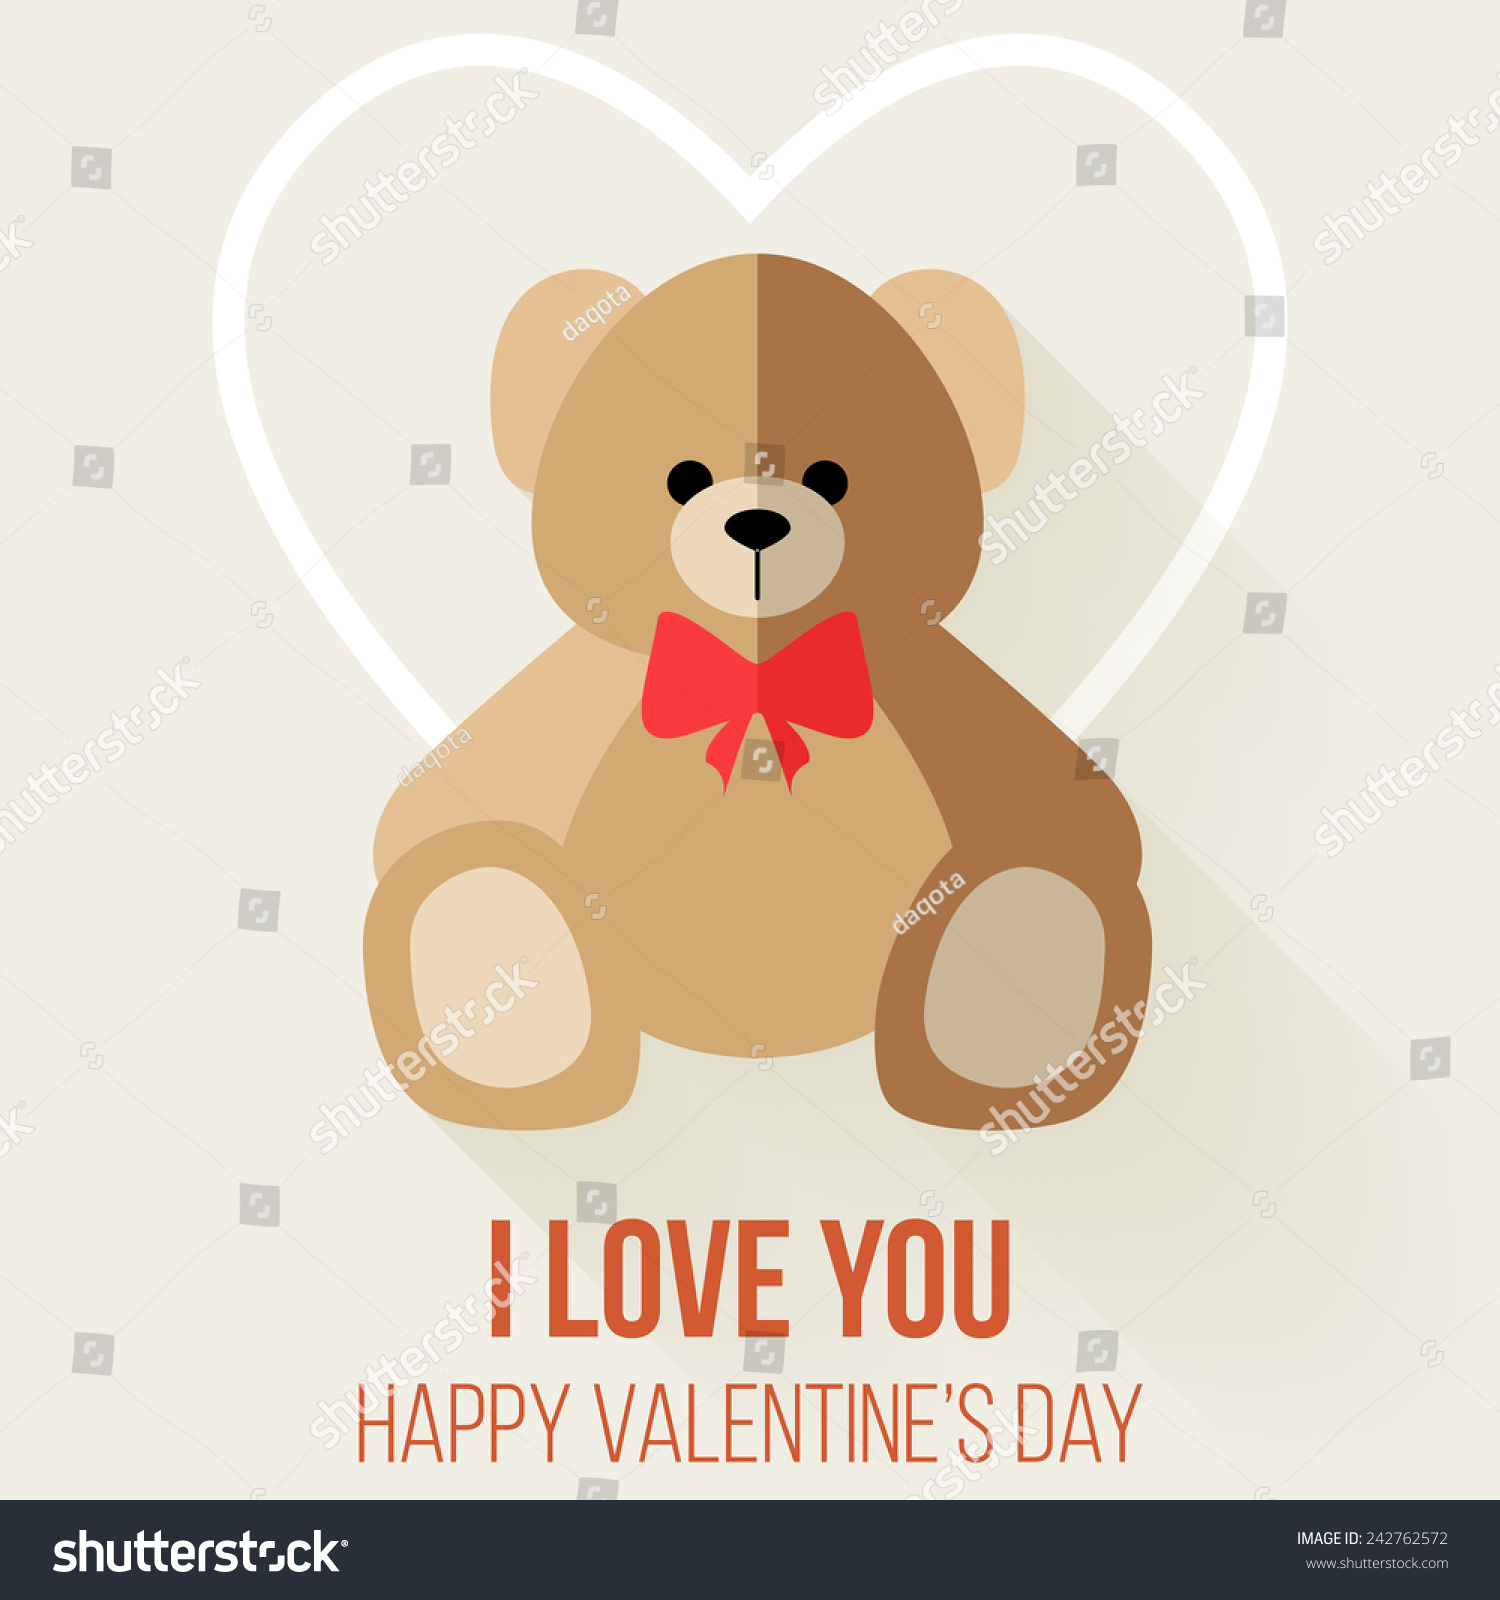 Teddy Bear Valentines Day Card Vector Vector 242762572 – Teddy Bear Valentines Day Card